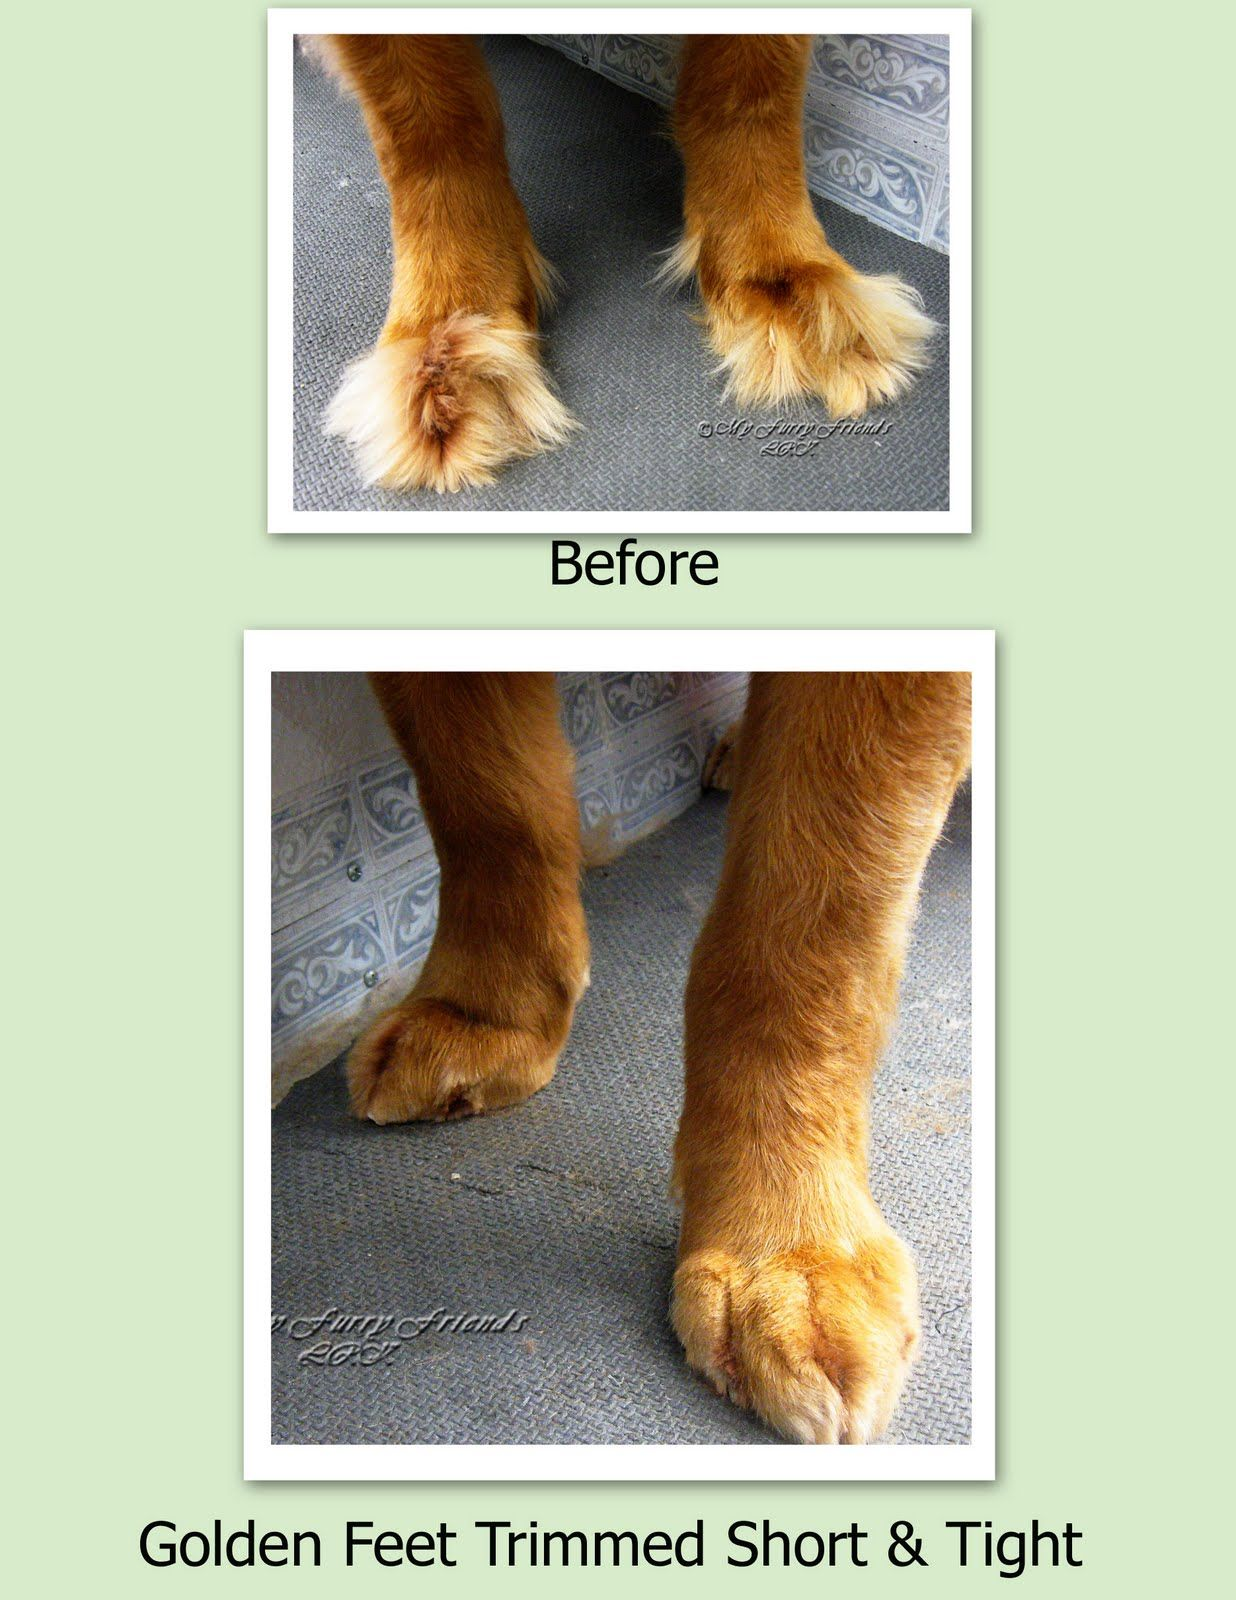 Tuesday S Tip 21 Trimming Feet Dog Groomers Golden Retriever